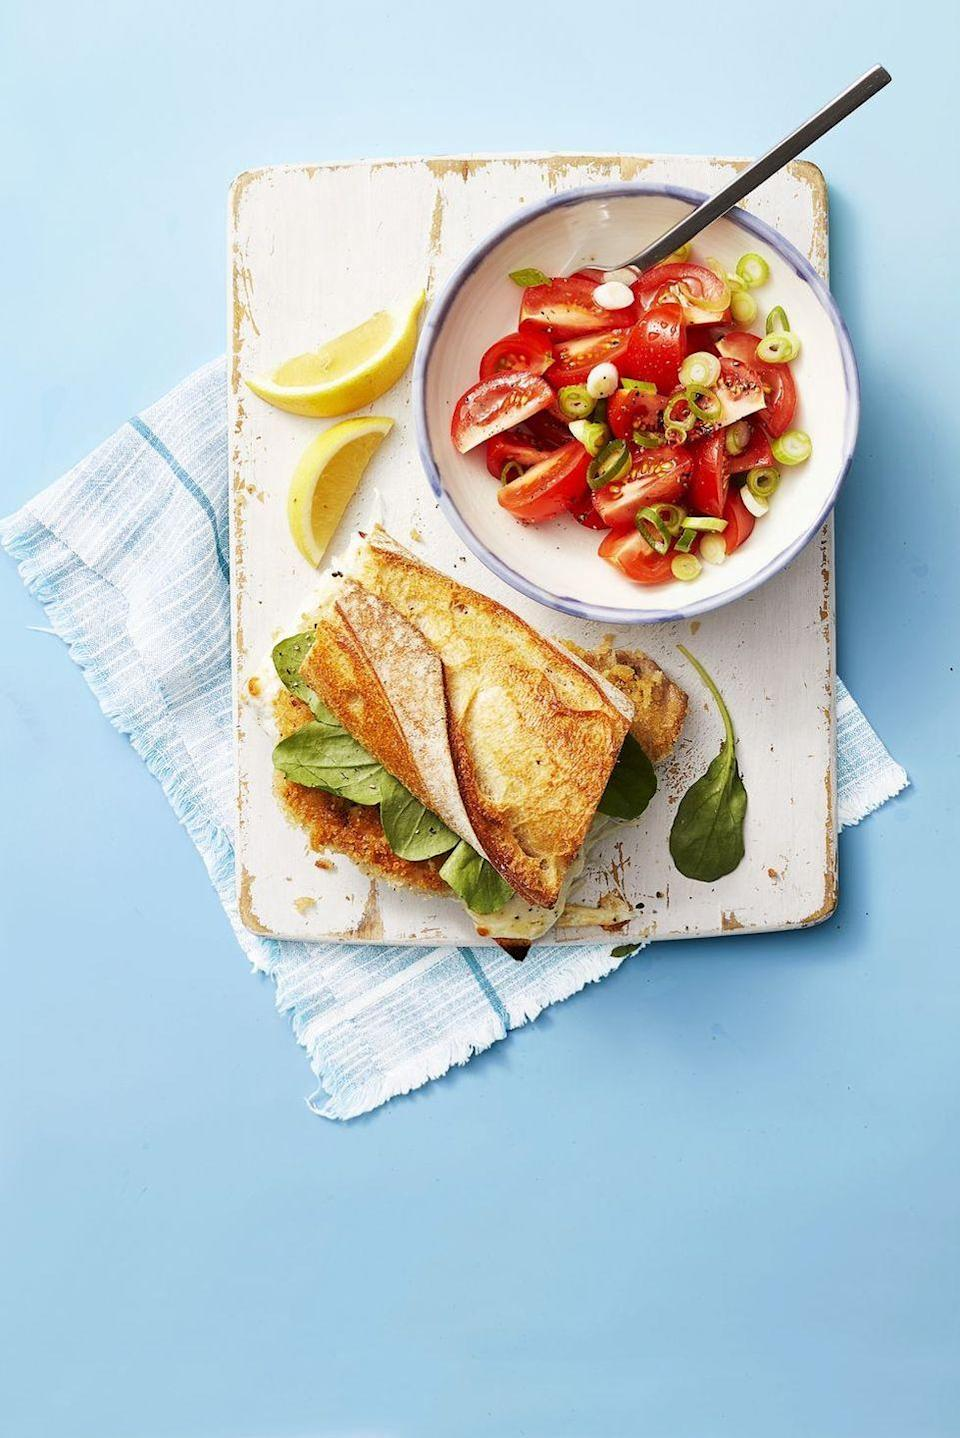 "<p>Who could resist panko-crusted chops sandwiched between cheesy bread? We can't.</p><p><em><a href=""https://www.goodhousekeeping.com/food-recipes/easy/a27543087/pork-milanese-sandwich-with-tomato-salad-recipe/"" rel=""nofollow noopener"" target=""_blank"" data-ylk=""slk:Get the recipe for Pork Milanese Sandwich With Tomato Salad »"" class=""link rapid-noclick-resp"">Get the recipe for Pork Milanese Sandwich With Tomato Salad »</a></em></p><p><strong>RELATED:</strong> <a href=""https://www.goodhousekeeping.com/health/diet-nutrition/g28829538/healthiest-cheese/"" rel=""nofollow noopener"" target=""_blank"" data-ylk=""slk:The Healthiest Cheeses You Can Buy, According to a Registered Dietician"" class=""link rapid-noclick-resp"">The Healthiest Cheeses You Can Buy, According to a Registered Dietician</a></p>"